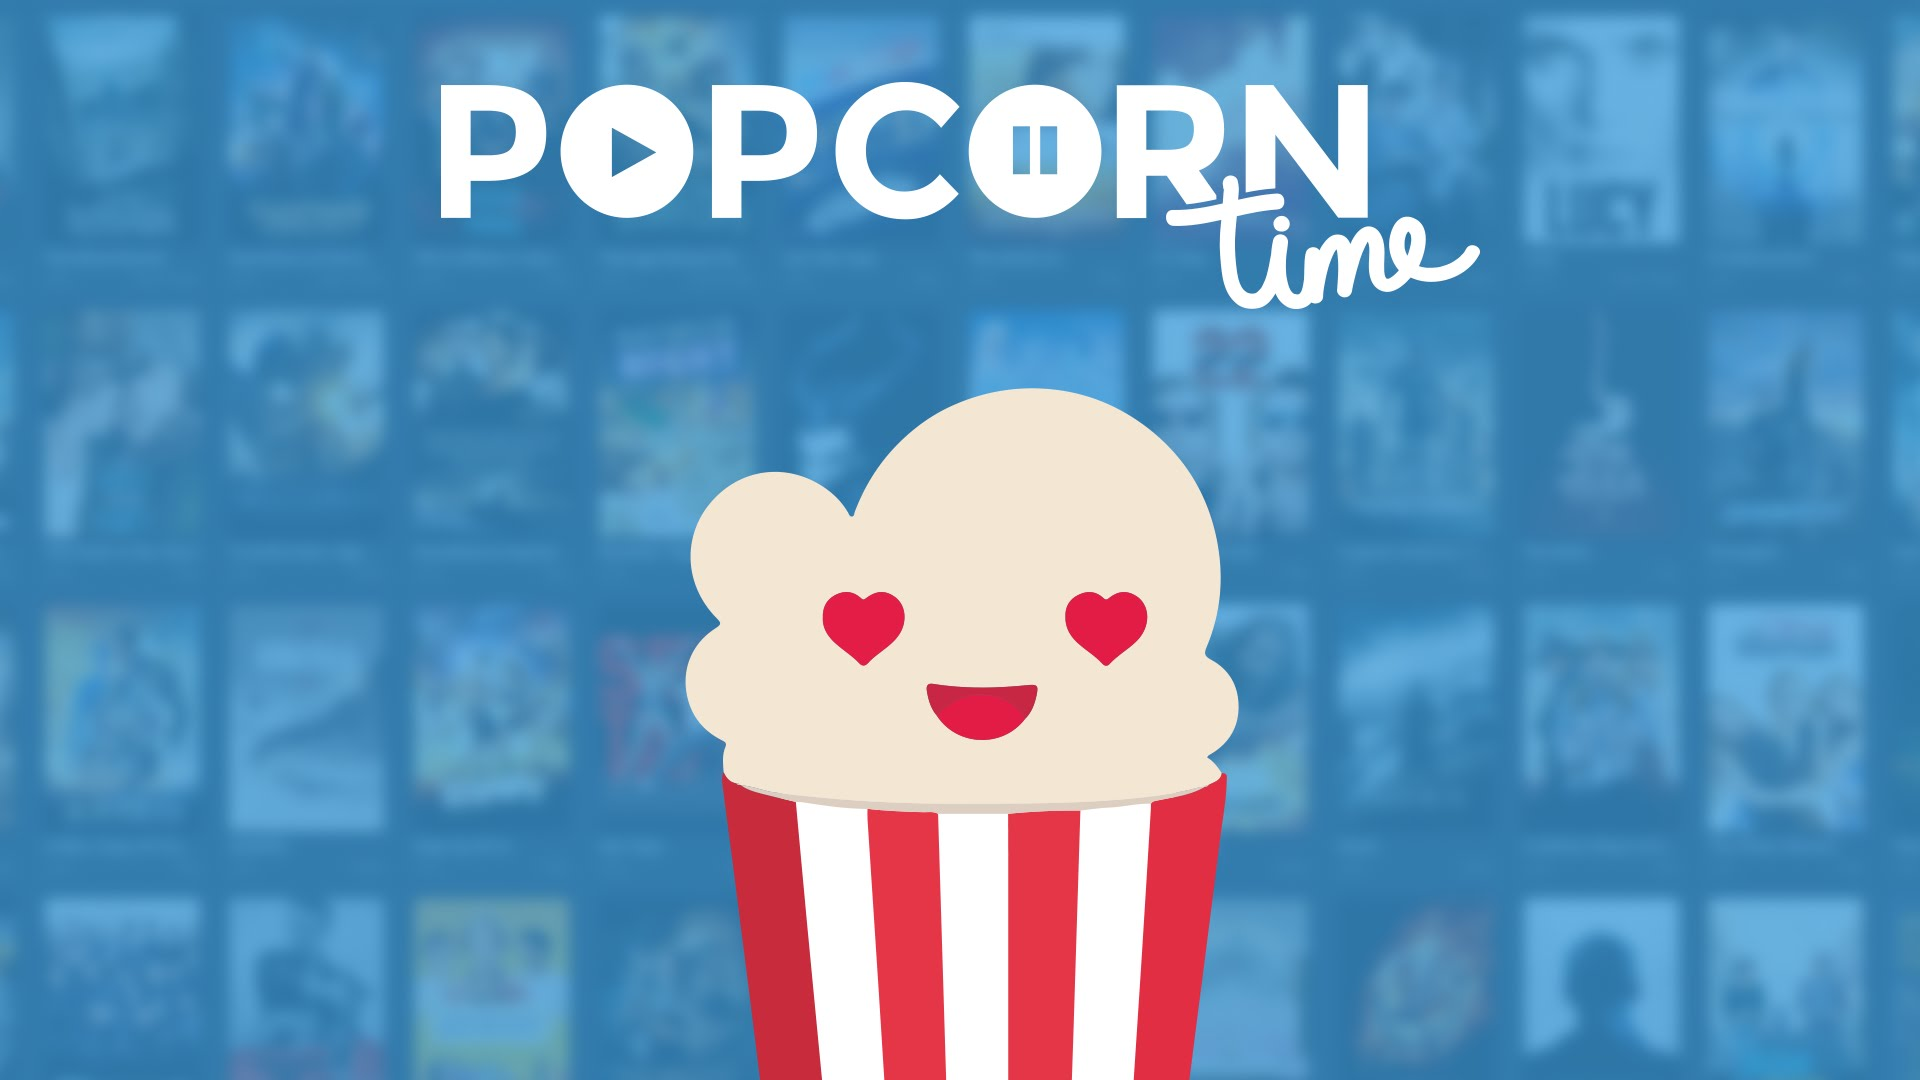 Popcorn Time: 'We're being made an easy scapegoat for explosion in movie streaming piracy'